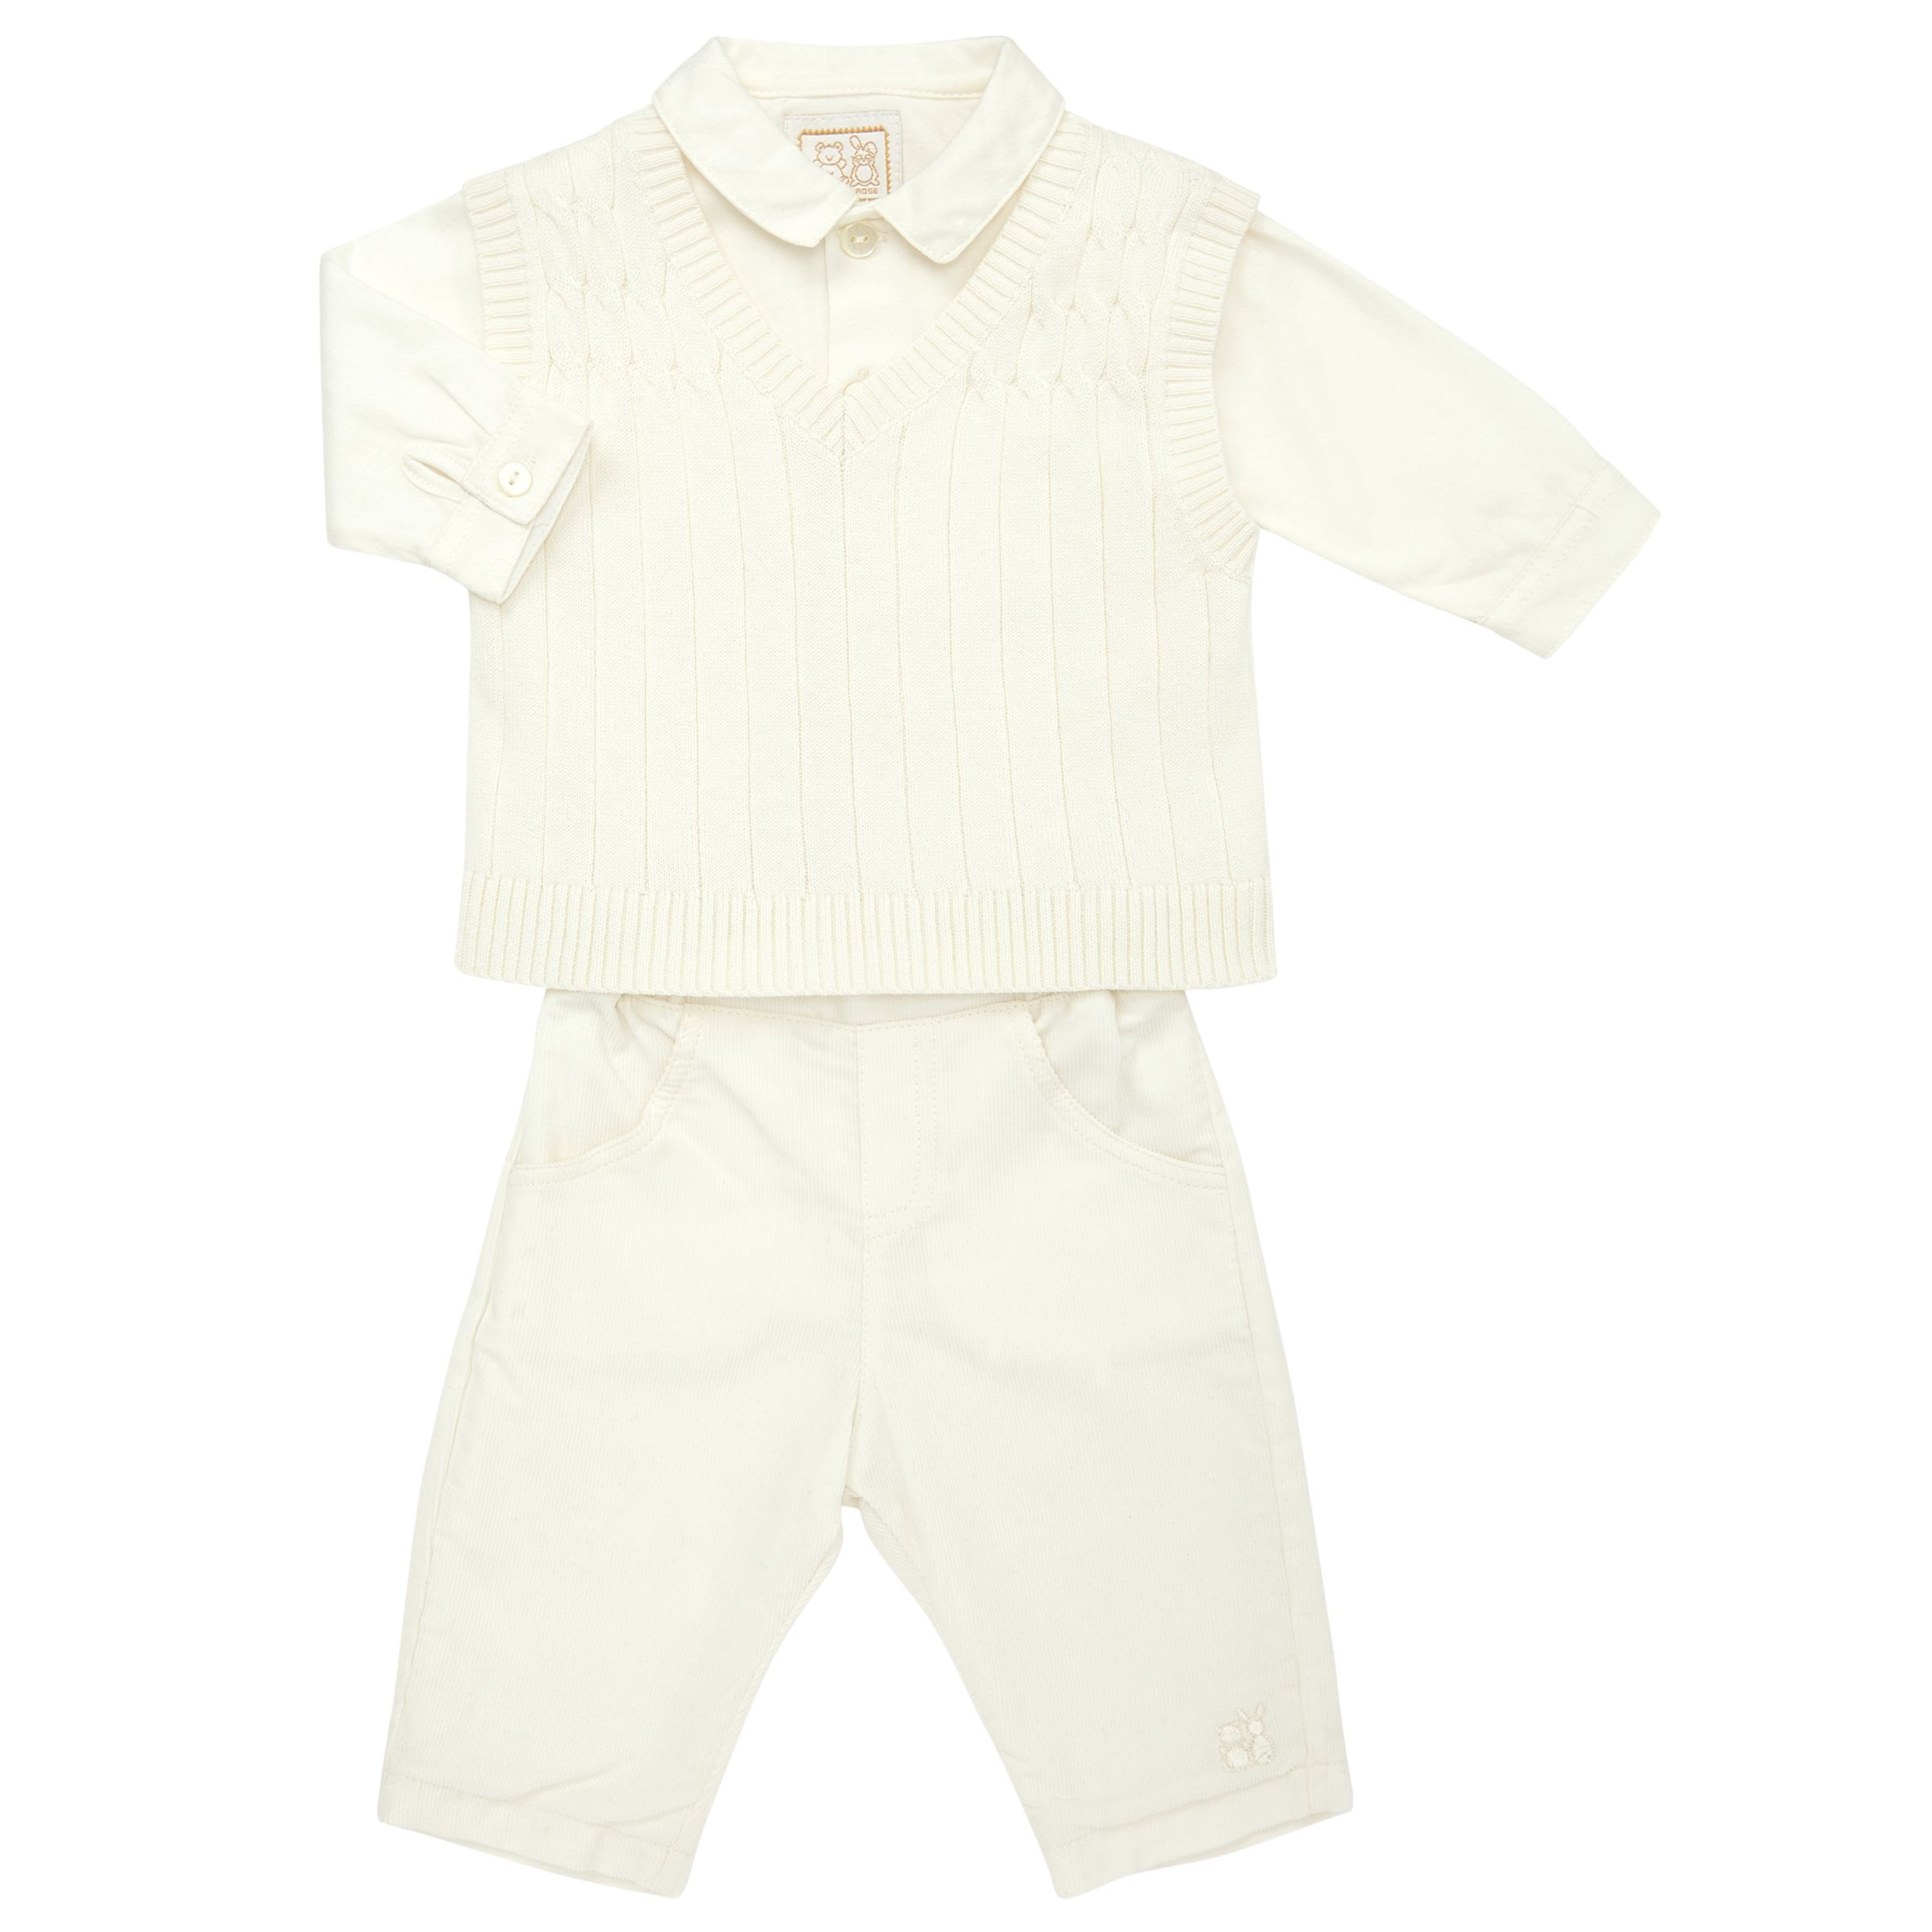 Emile et Rose Emile et Rose Baby Guliver Three Piece Set, Cream